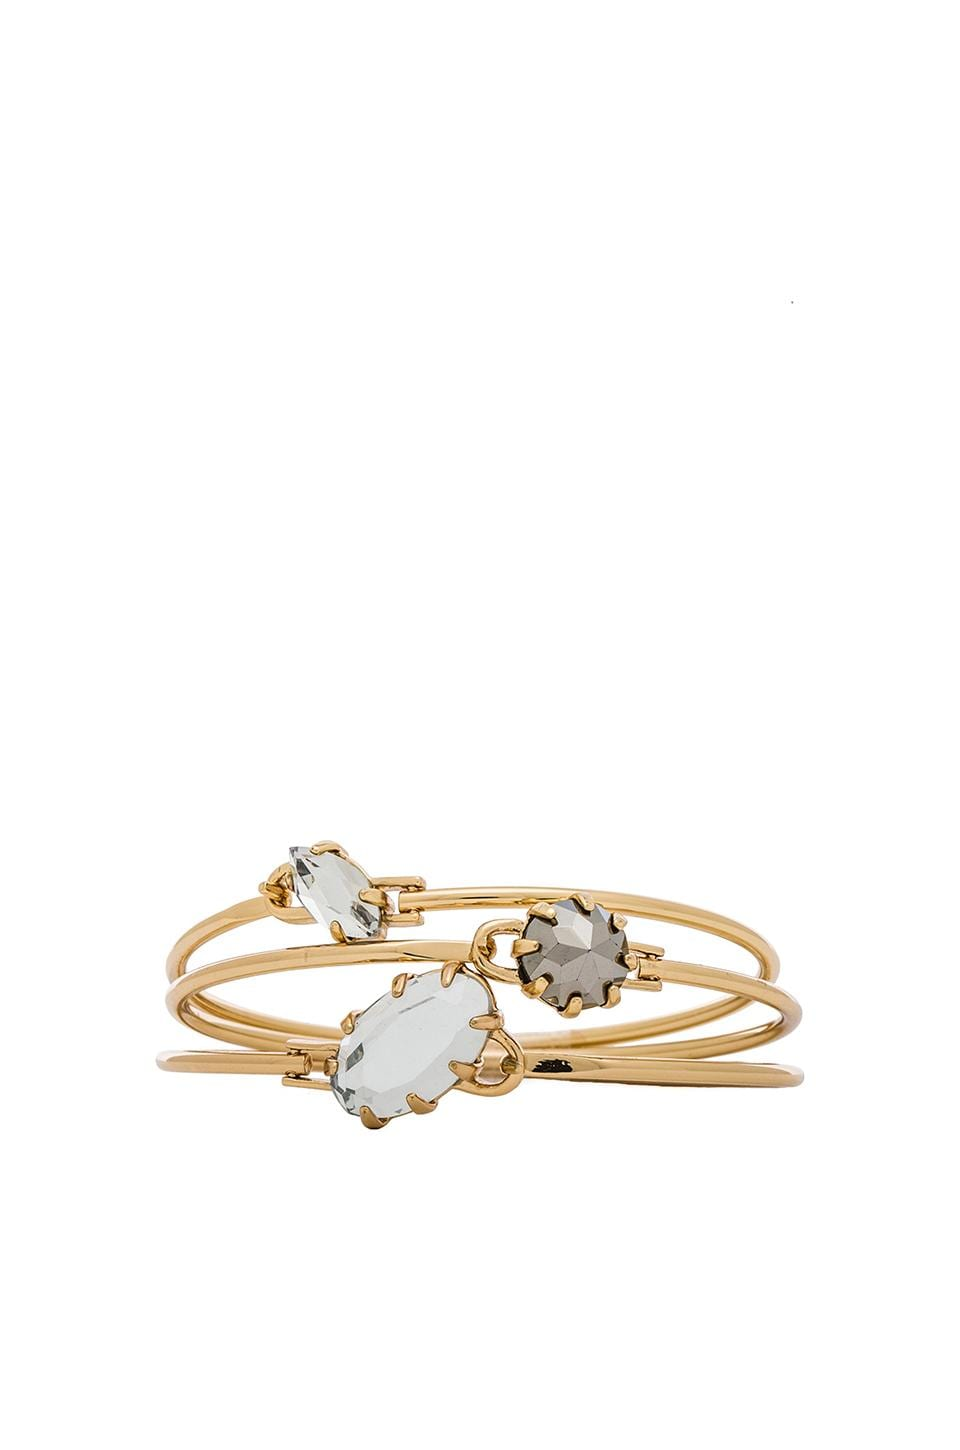 Rebecca Minkoff Starry Bangle Set in Gold, Mirror Crystal & Hematite